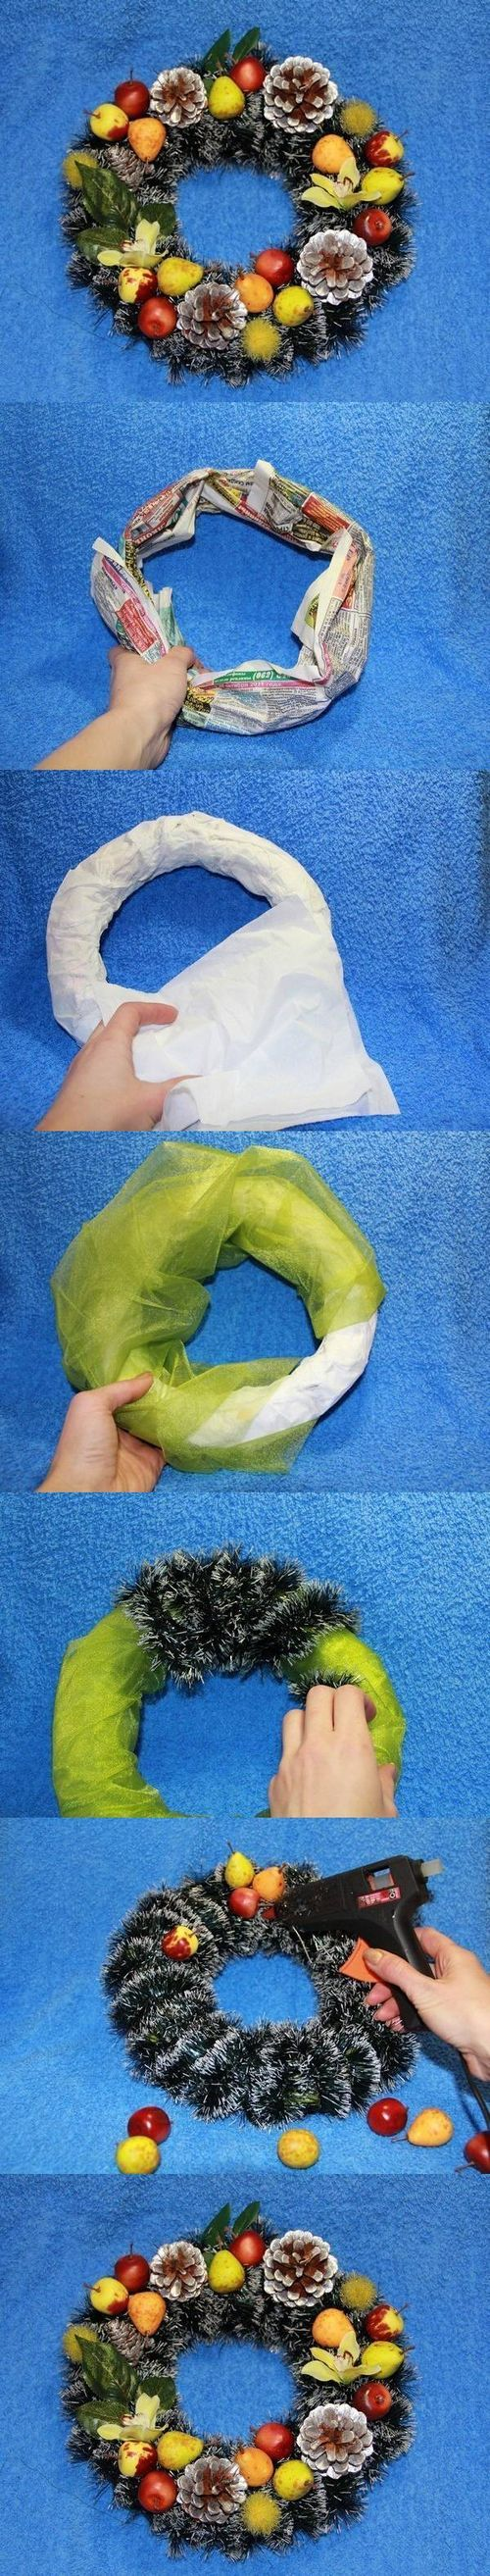 DIY Easy Christmas Wreath DIY Projects / UsefulDIY.com on imgfave